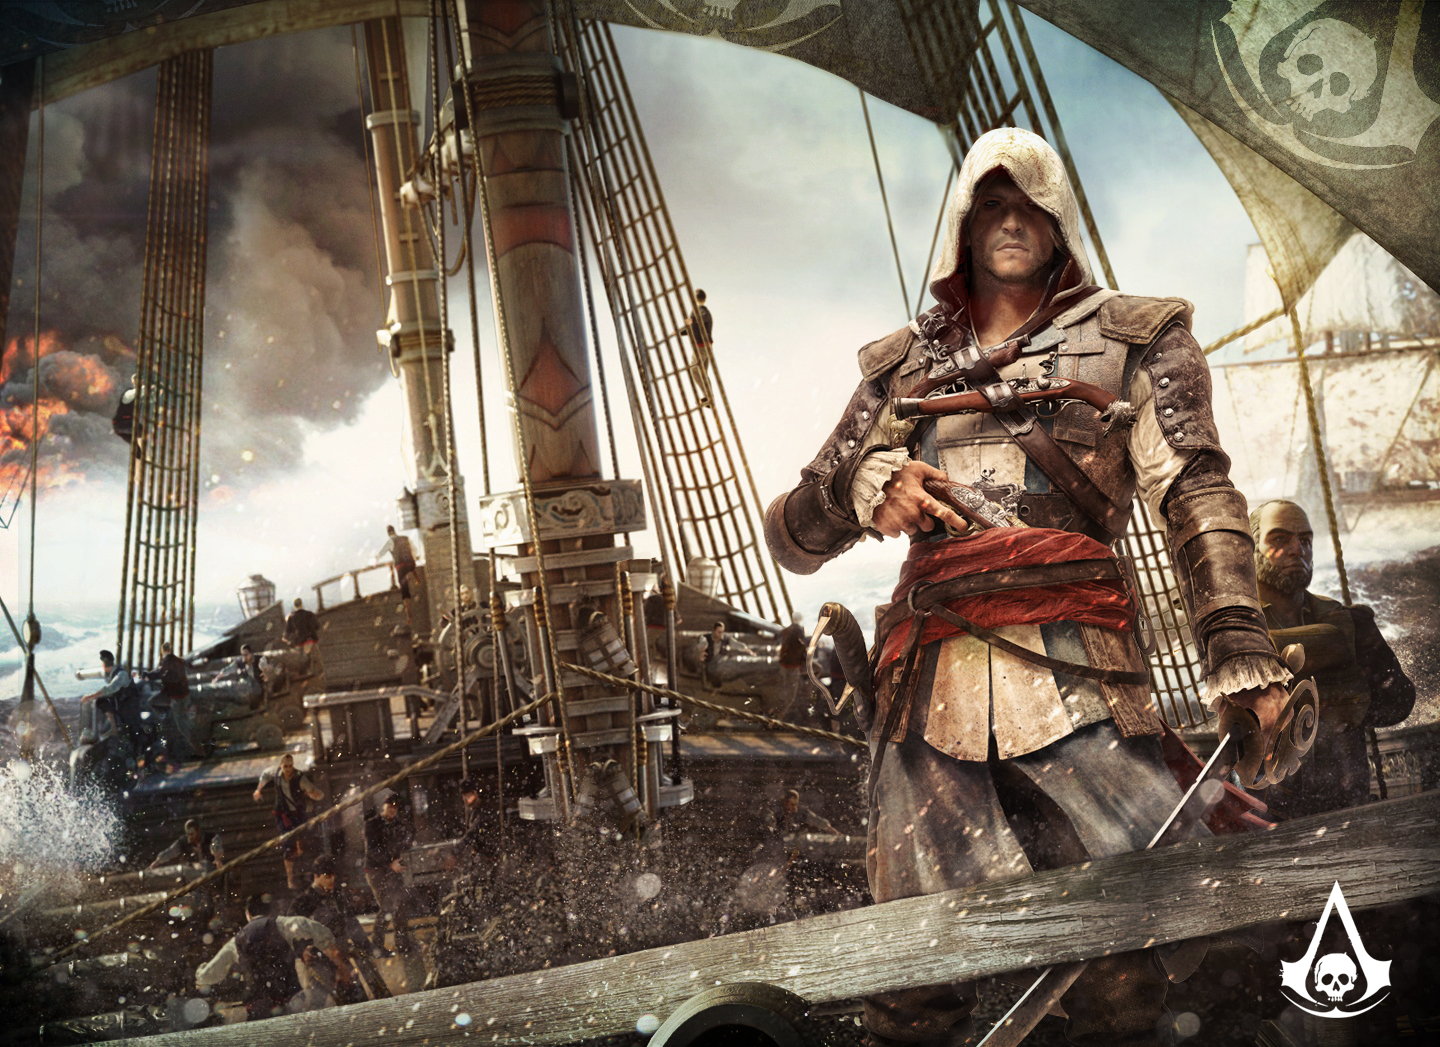 Free Download Assassins Creed 4 Black Flag Pirate Gameplay Trailer